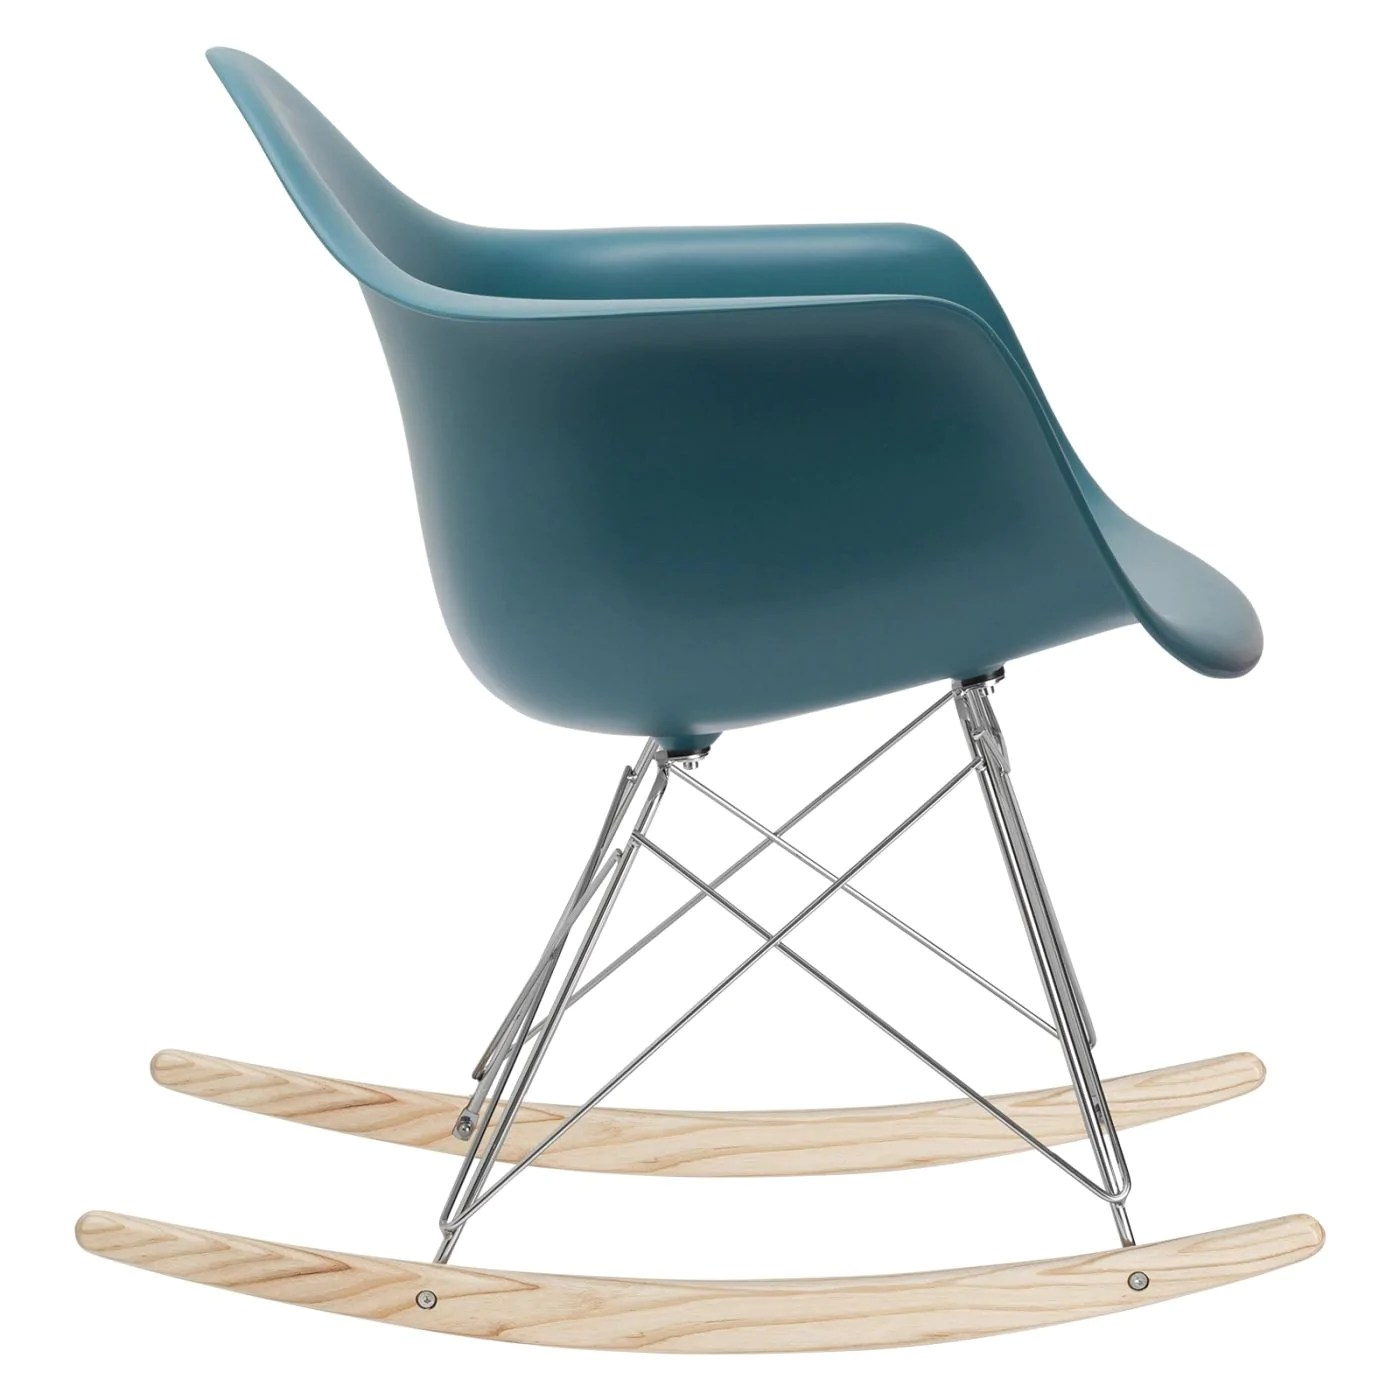 Teal Rocking Chair Edgemod Rocker Lounge Chair In Teal At Contemporary